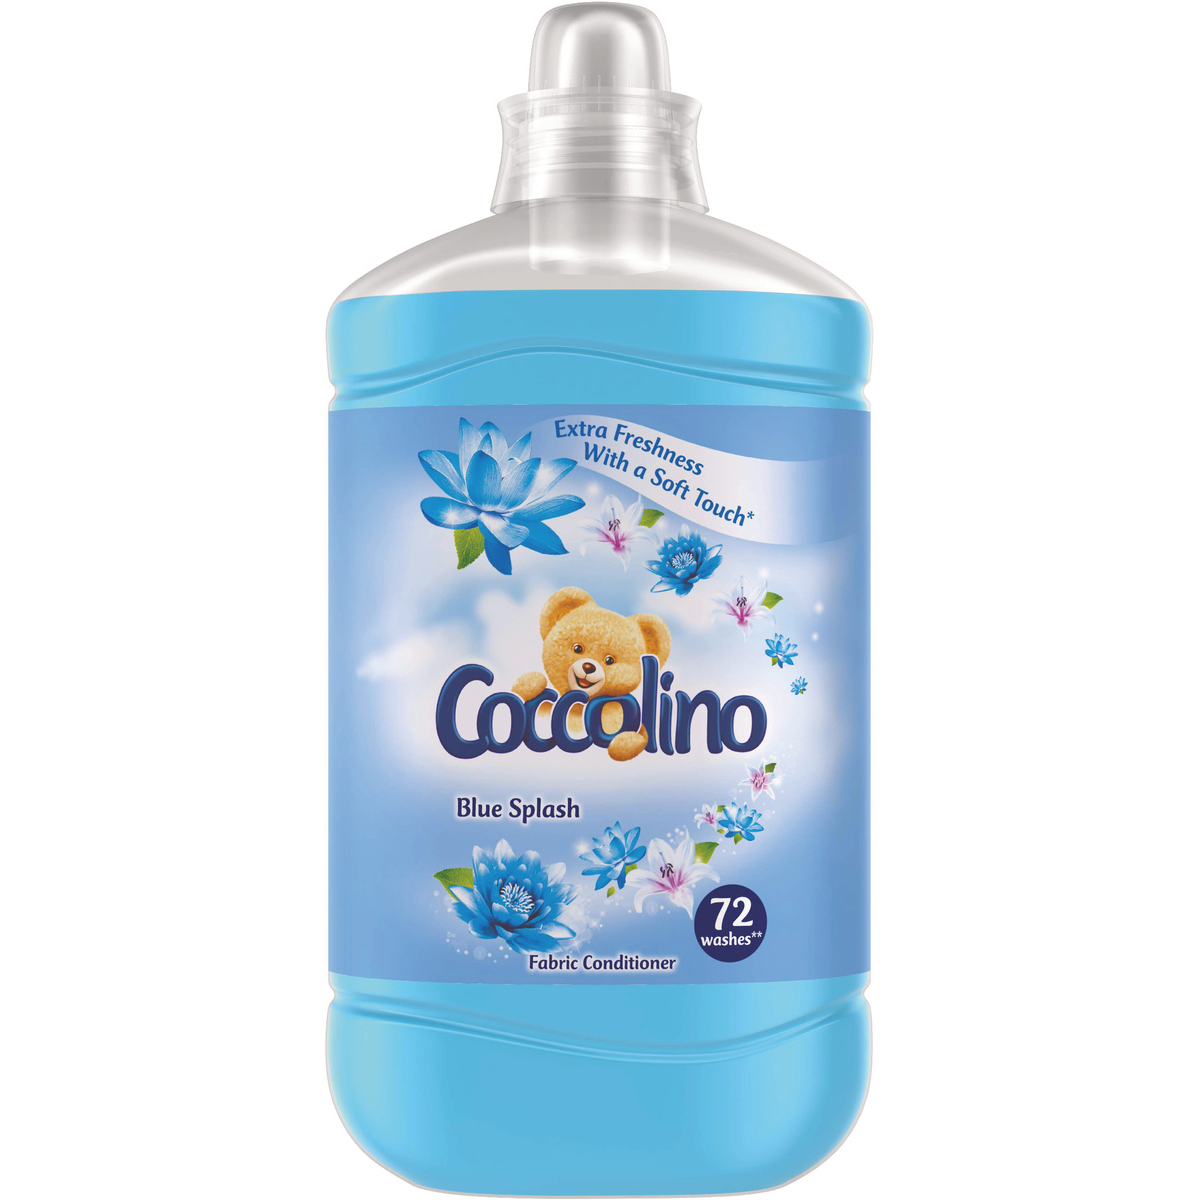 Balsam de rufe Coccolino Blue Splash, 72 spalari, 1.8 L imagine 2021